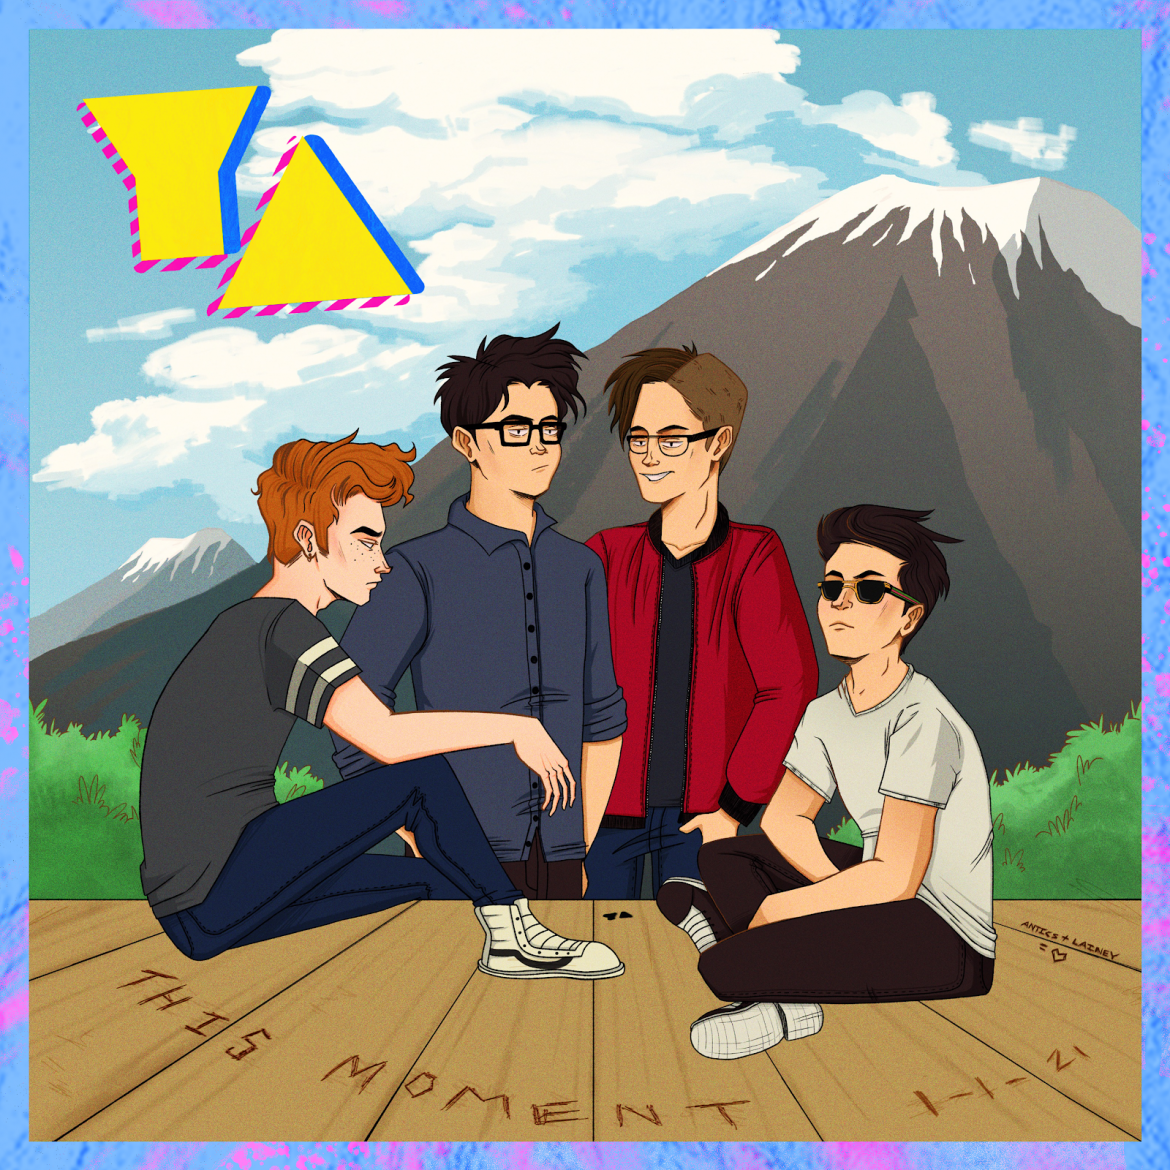 Youth Antics Released New Song, This Moment, on Spotify